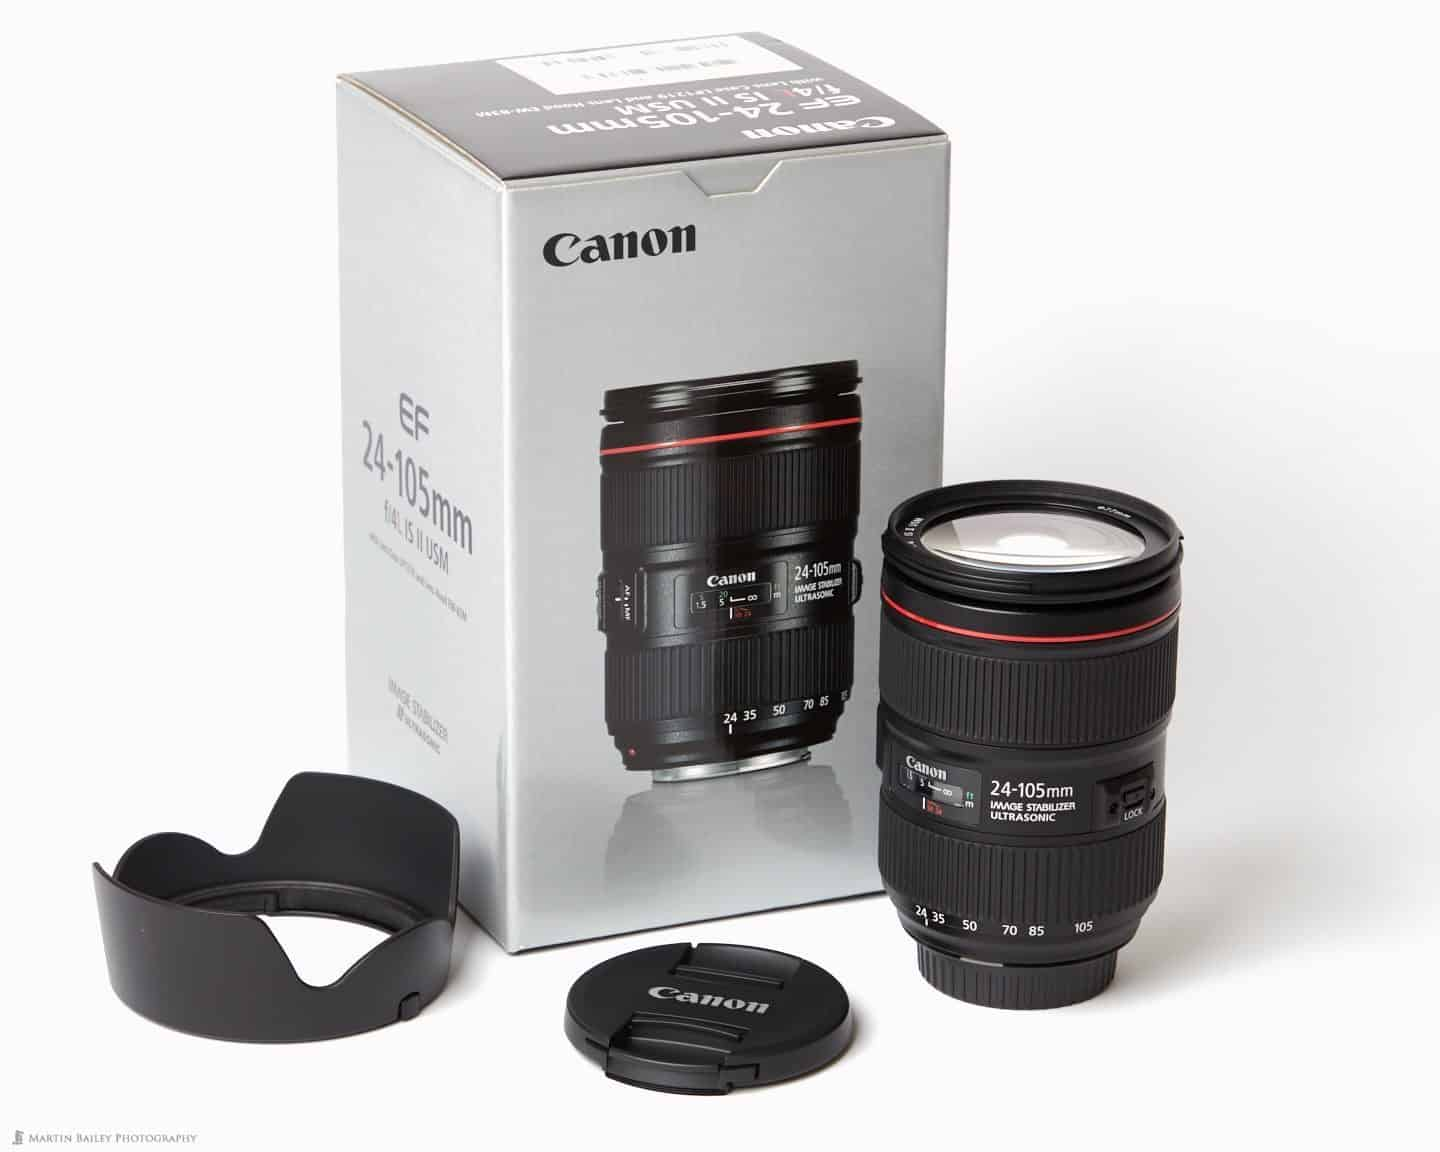 Canon EF24-105mm F4 IS II USM Lens